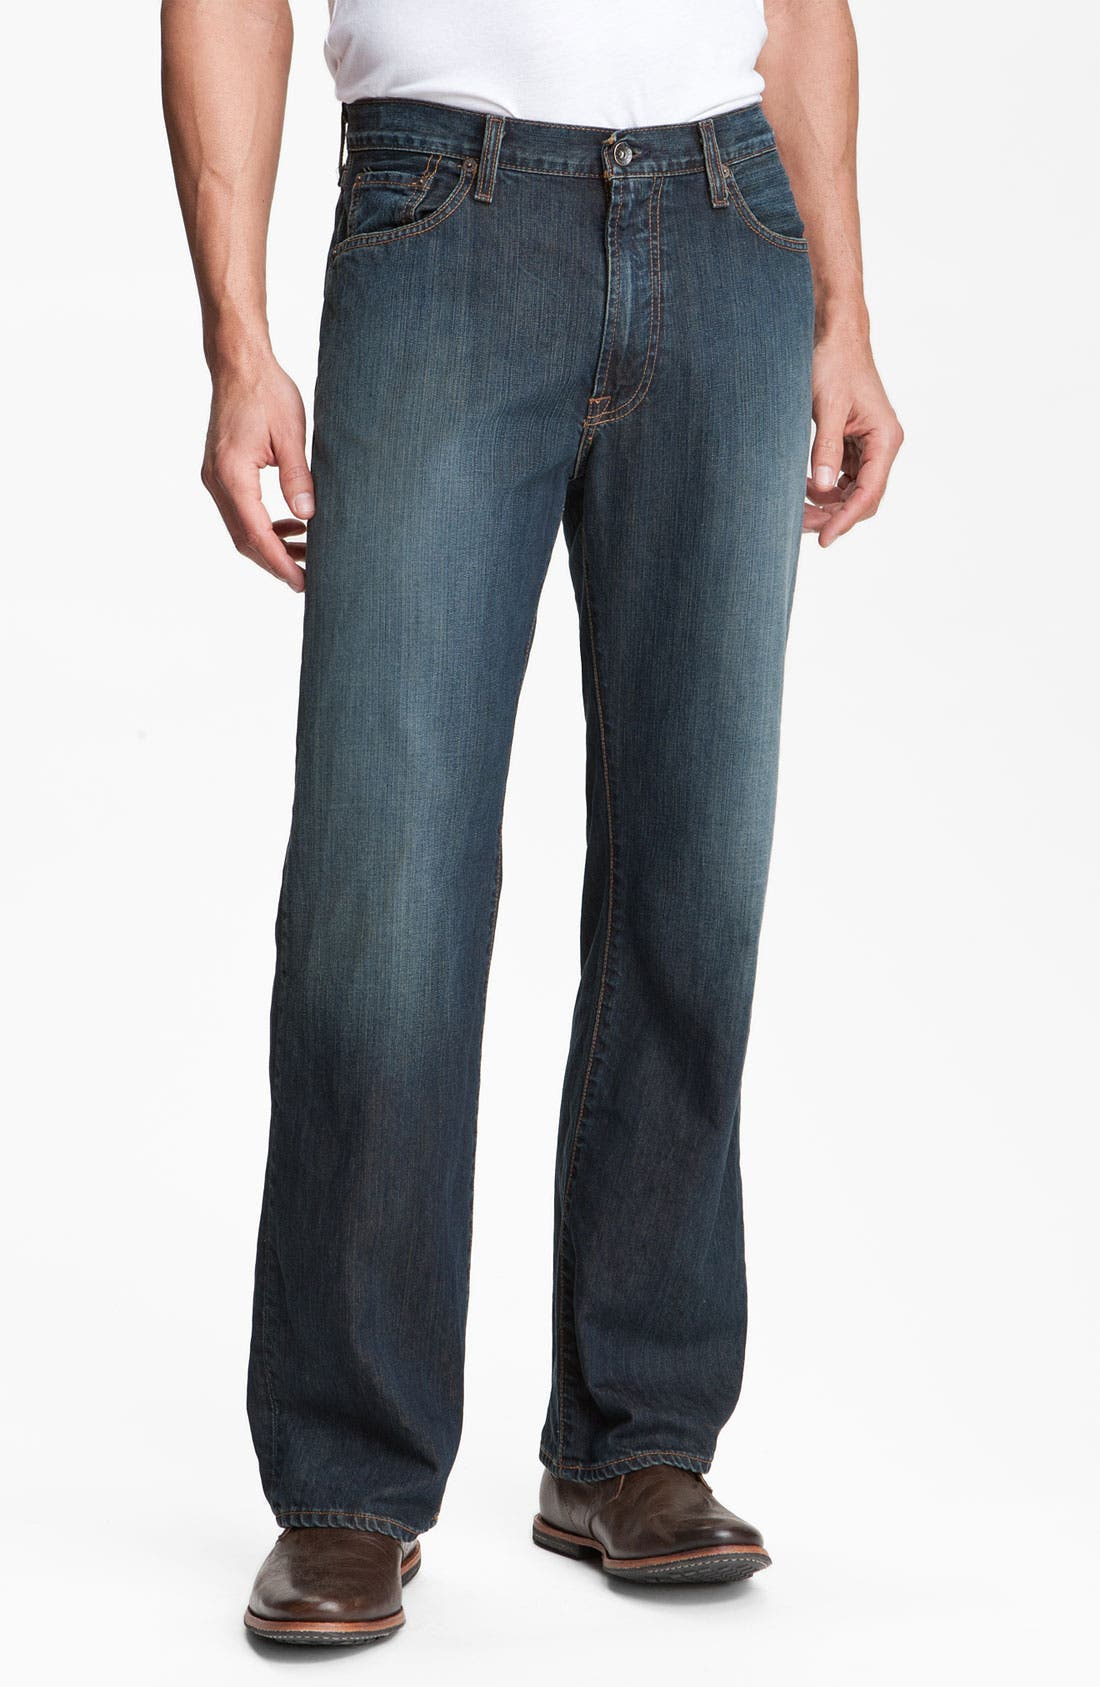 Alternate Image 1 Selected - Lucky Brand Relaxed Straight Leg Jeans (Love Train)(Big & Tall)